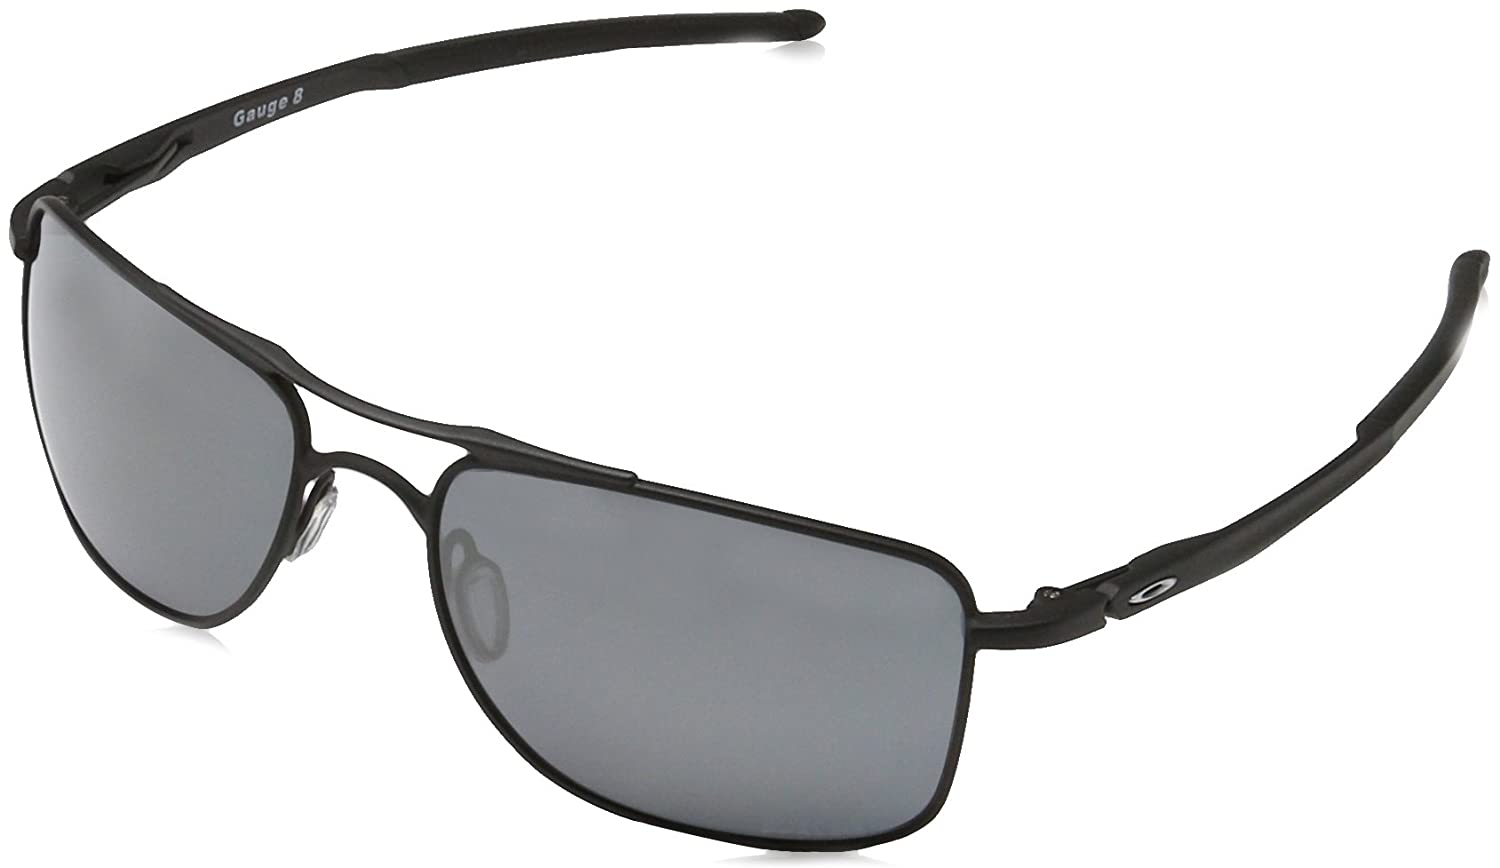 fee6a6ed2af43 Amazon.com  Oakley Gauge 8 M Prizm Polarized Sunglasses  Clothing